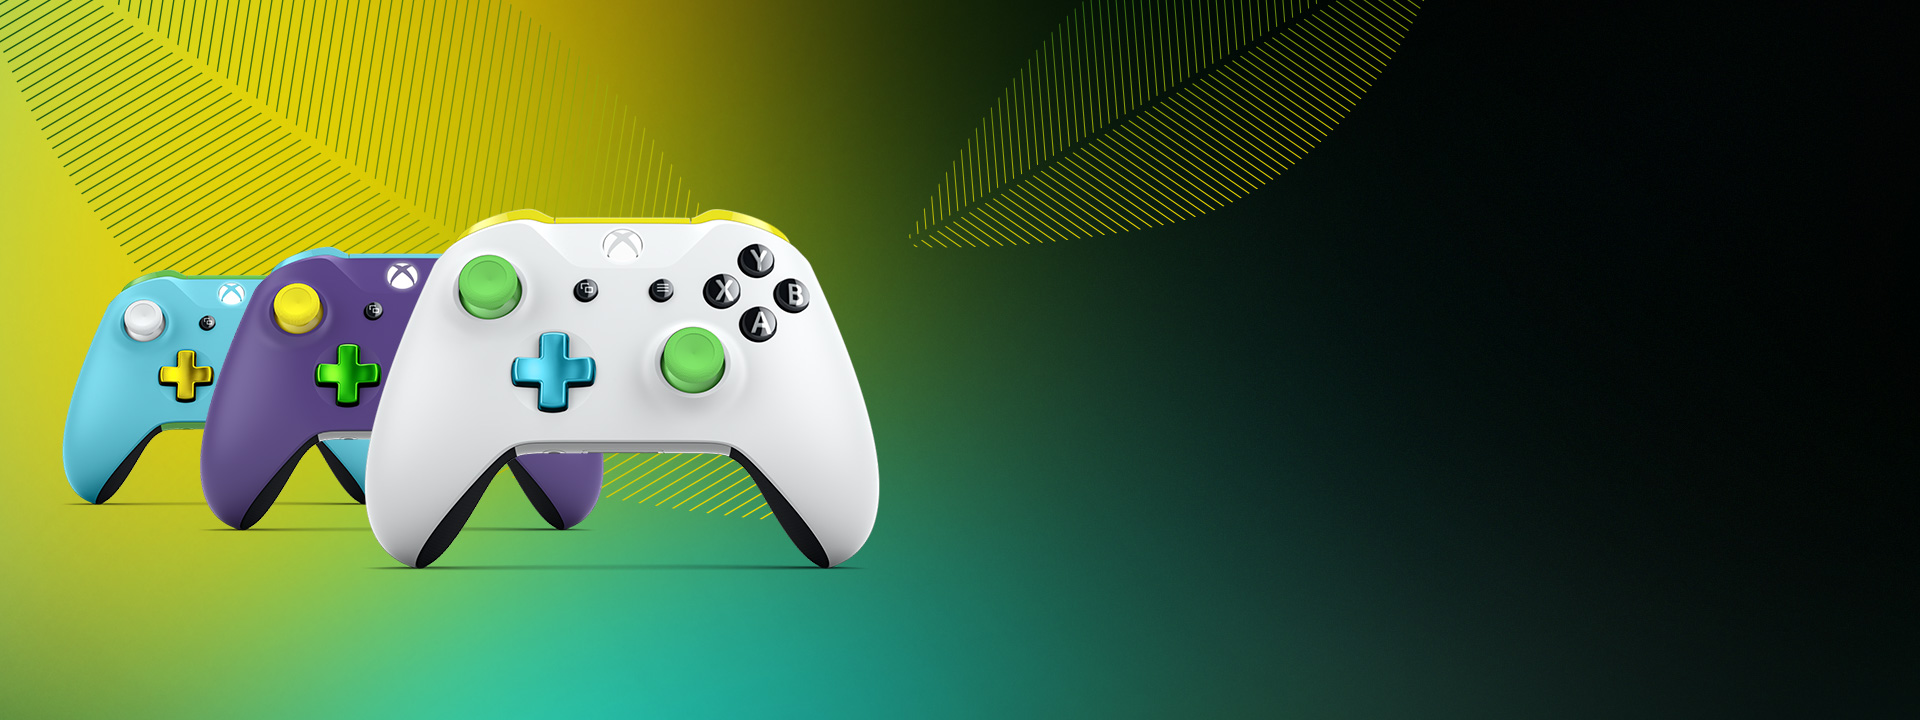 Three custom Xbox Design Lab controllers among abstract spring leaves